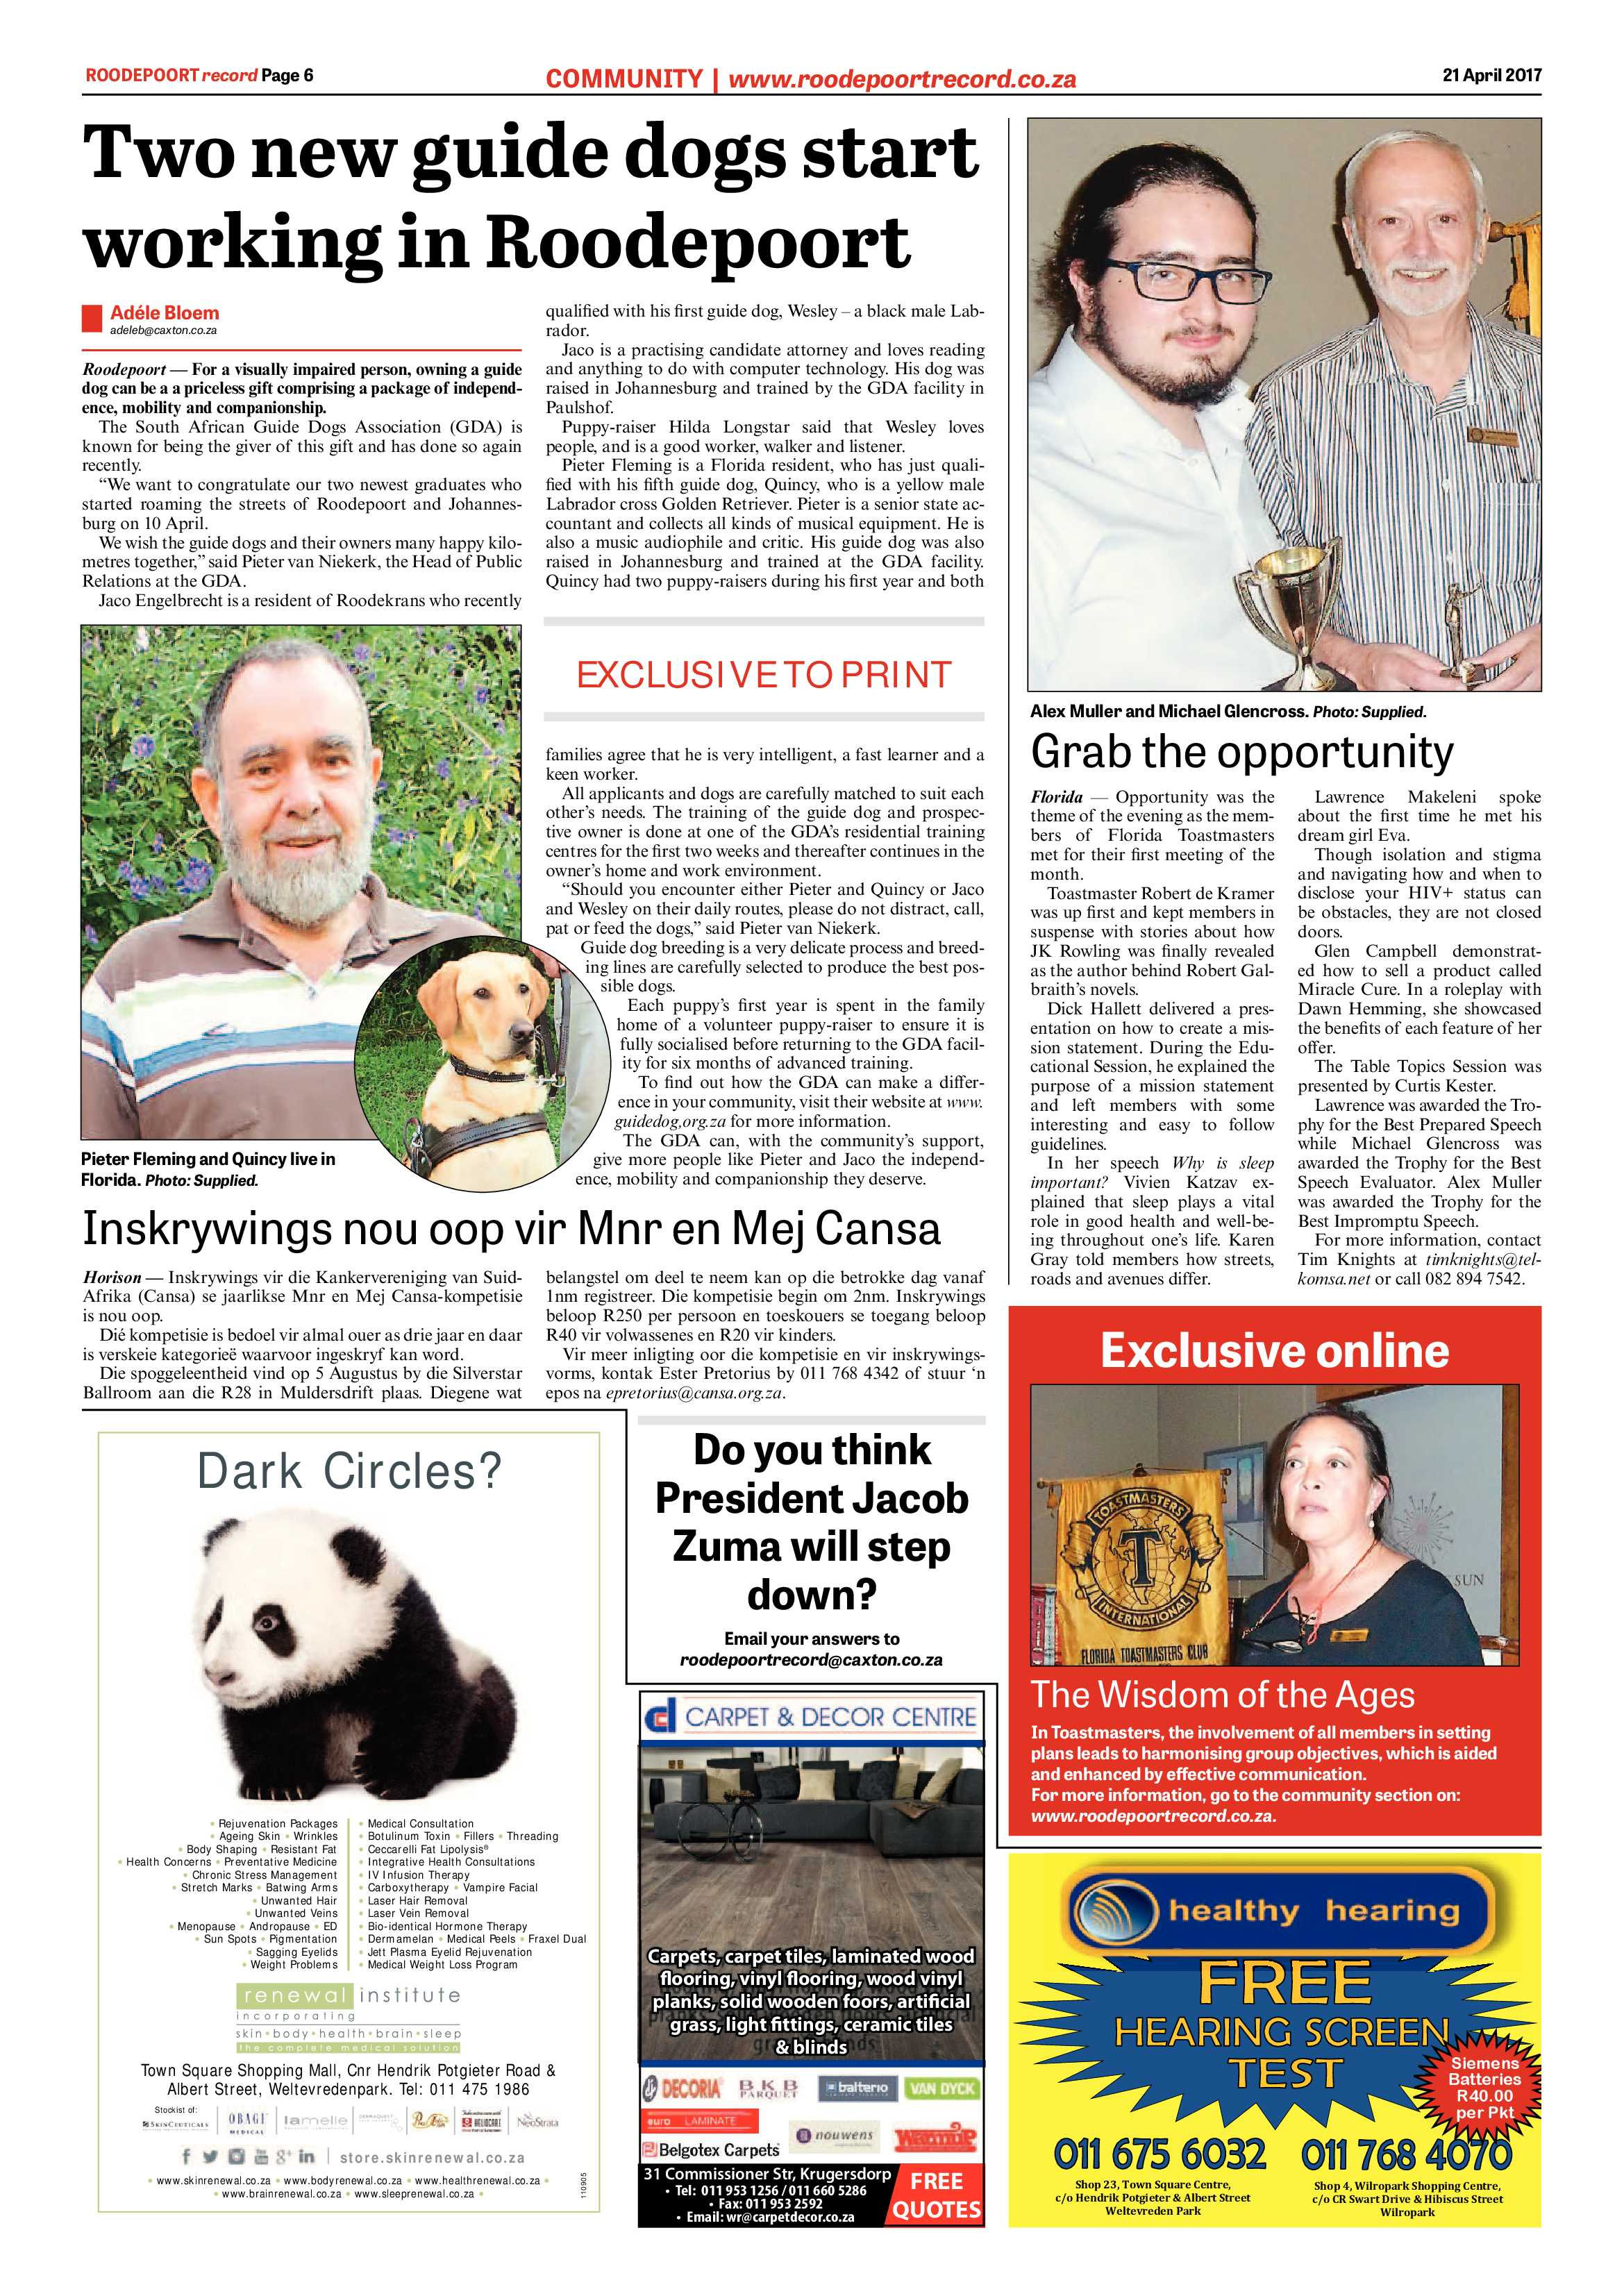 roodepoort-record-21-april-2017-epapers-page-6